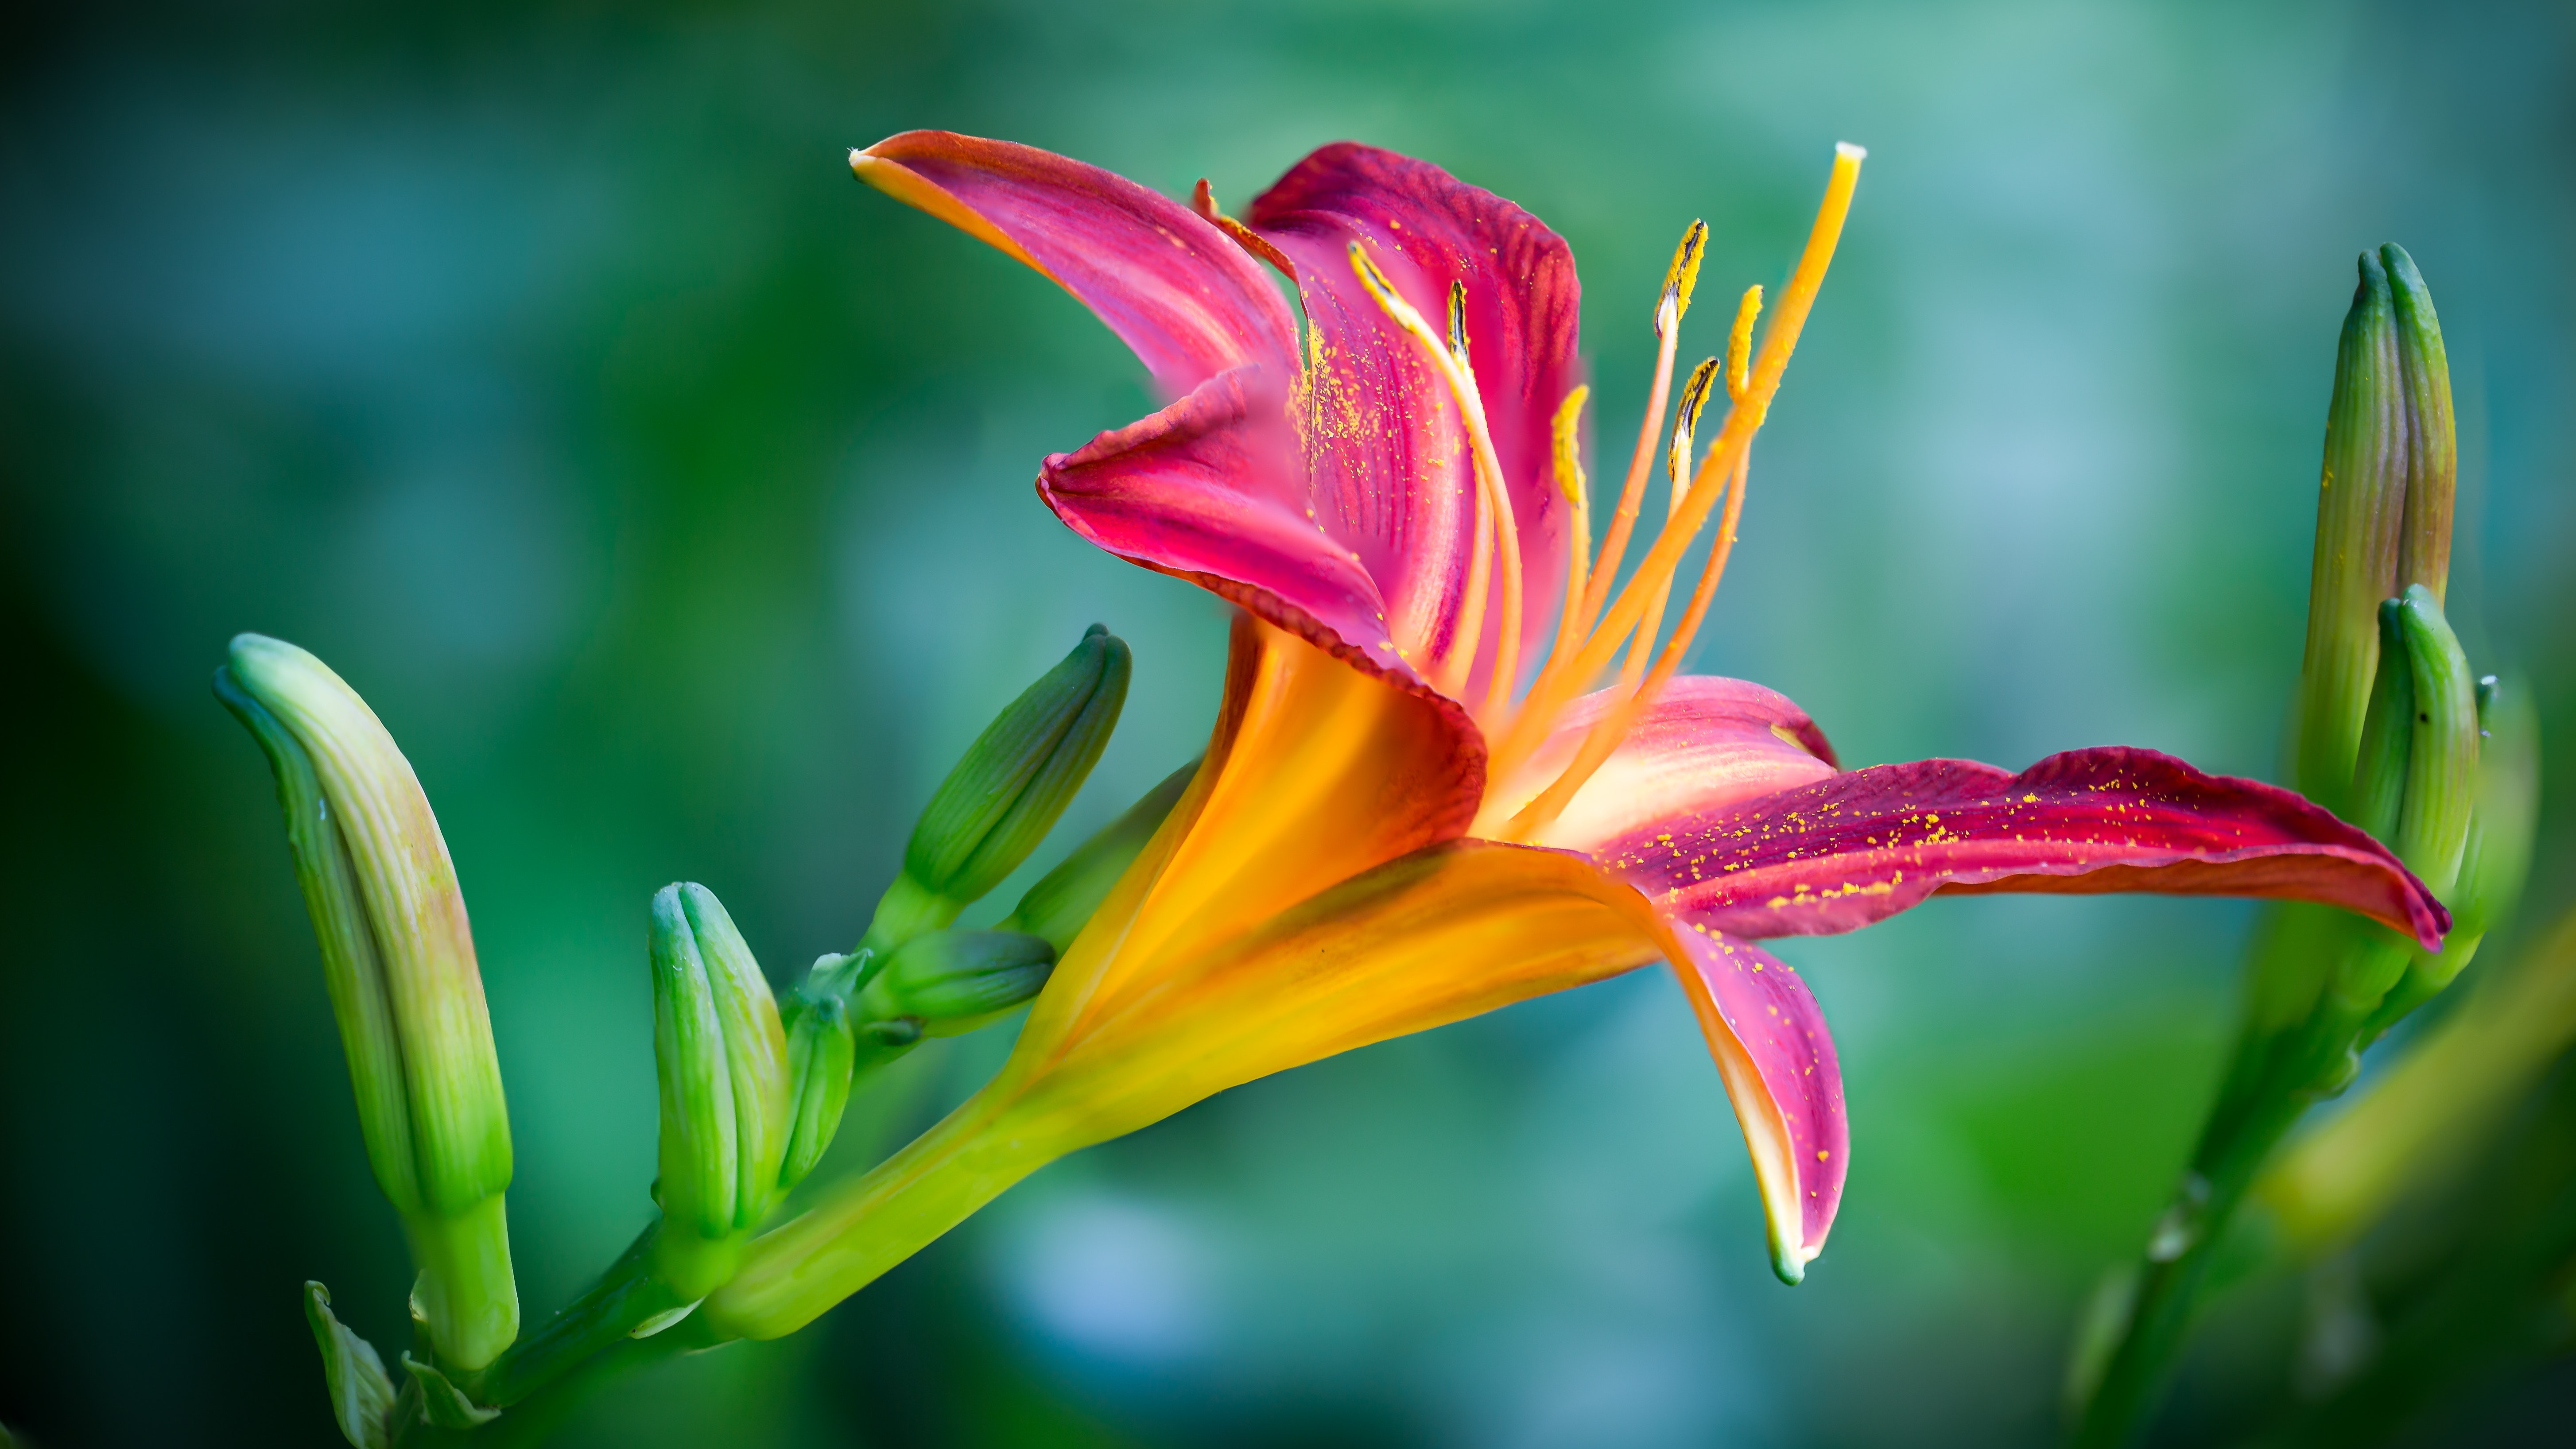 Pink and Yellow Lily Flower in Closeup Photo, Growth, Green, Garden, Macro, HQ Photo